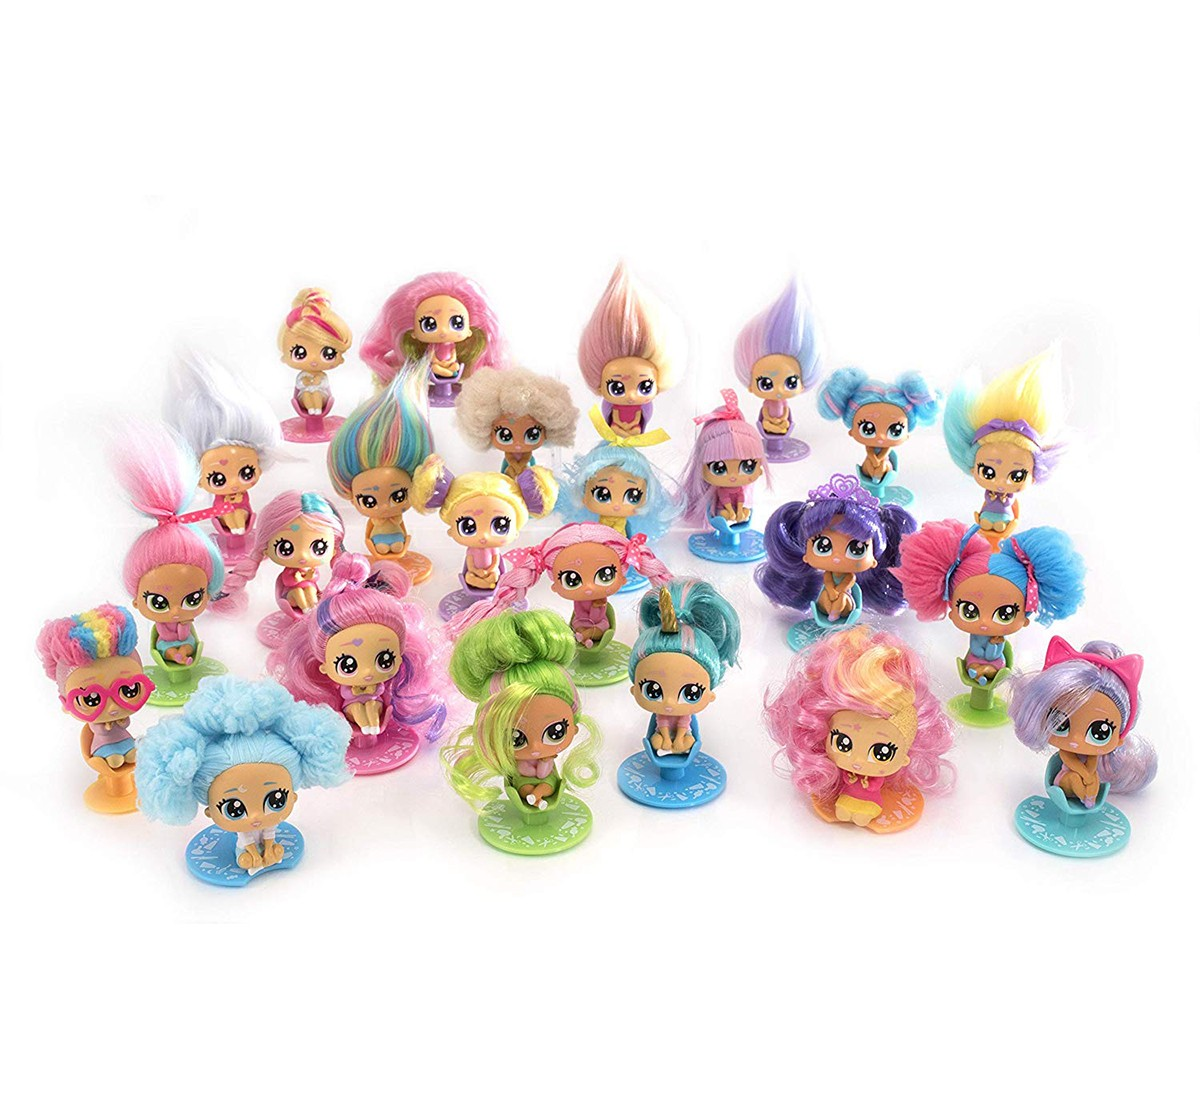 Hairdooz Shampoo Pack With Doll (Assorted) Collectible Dolls for Girls age 5Y+